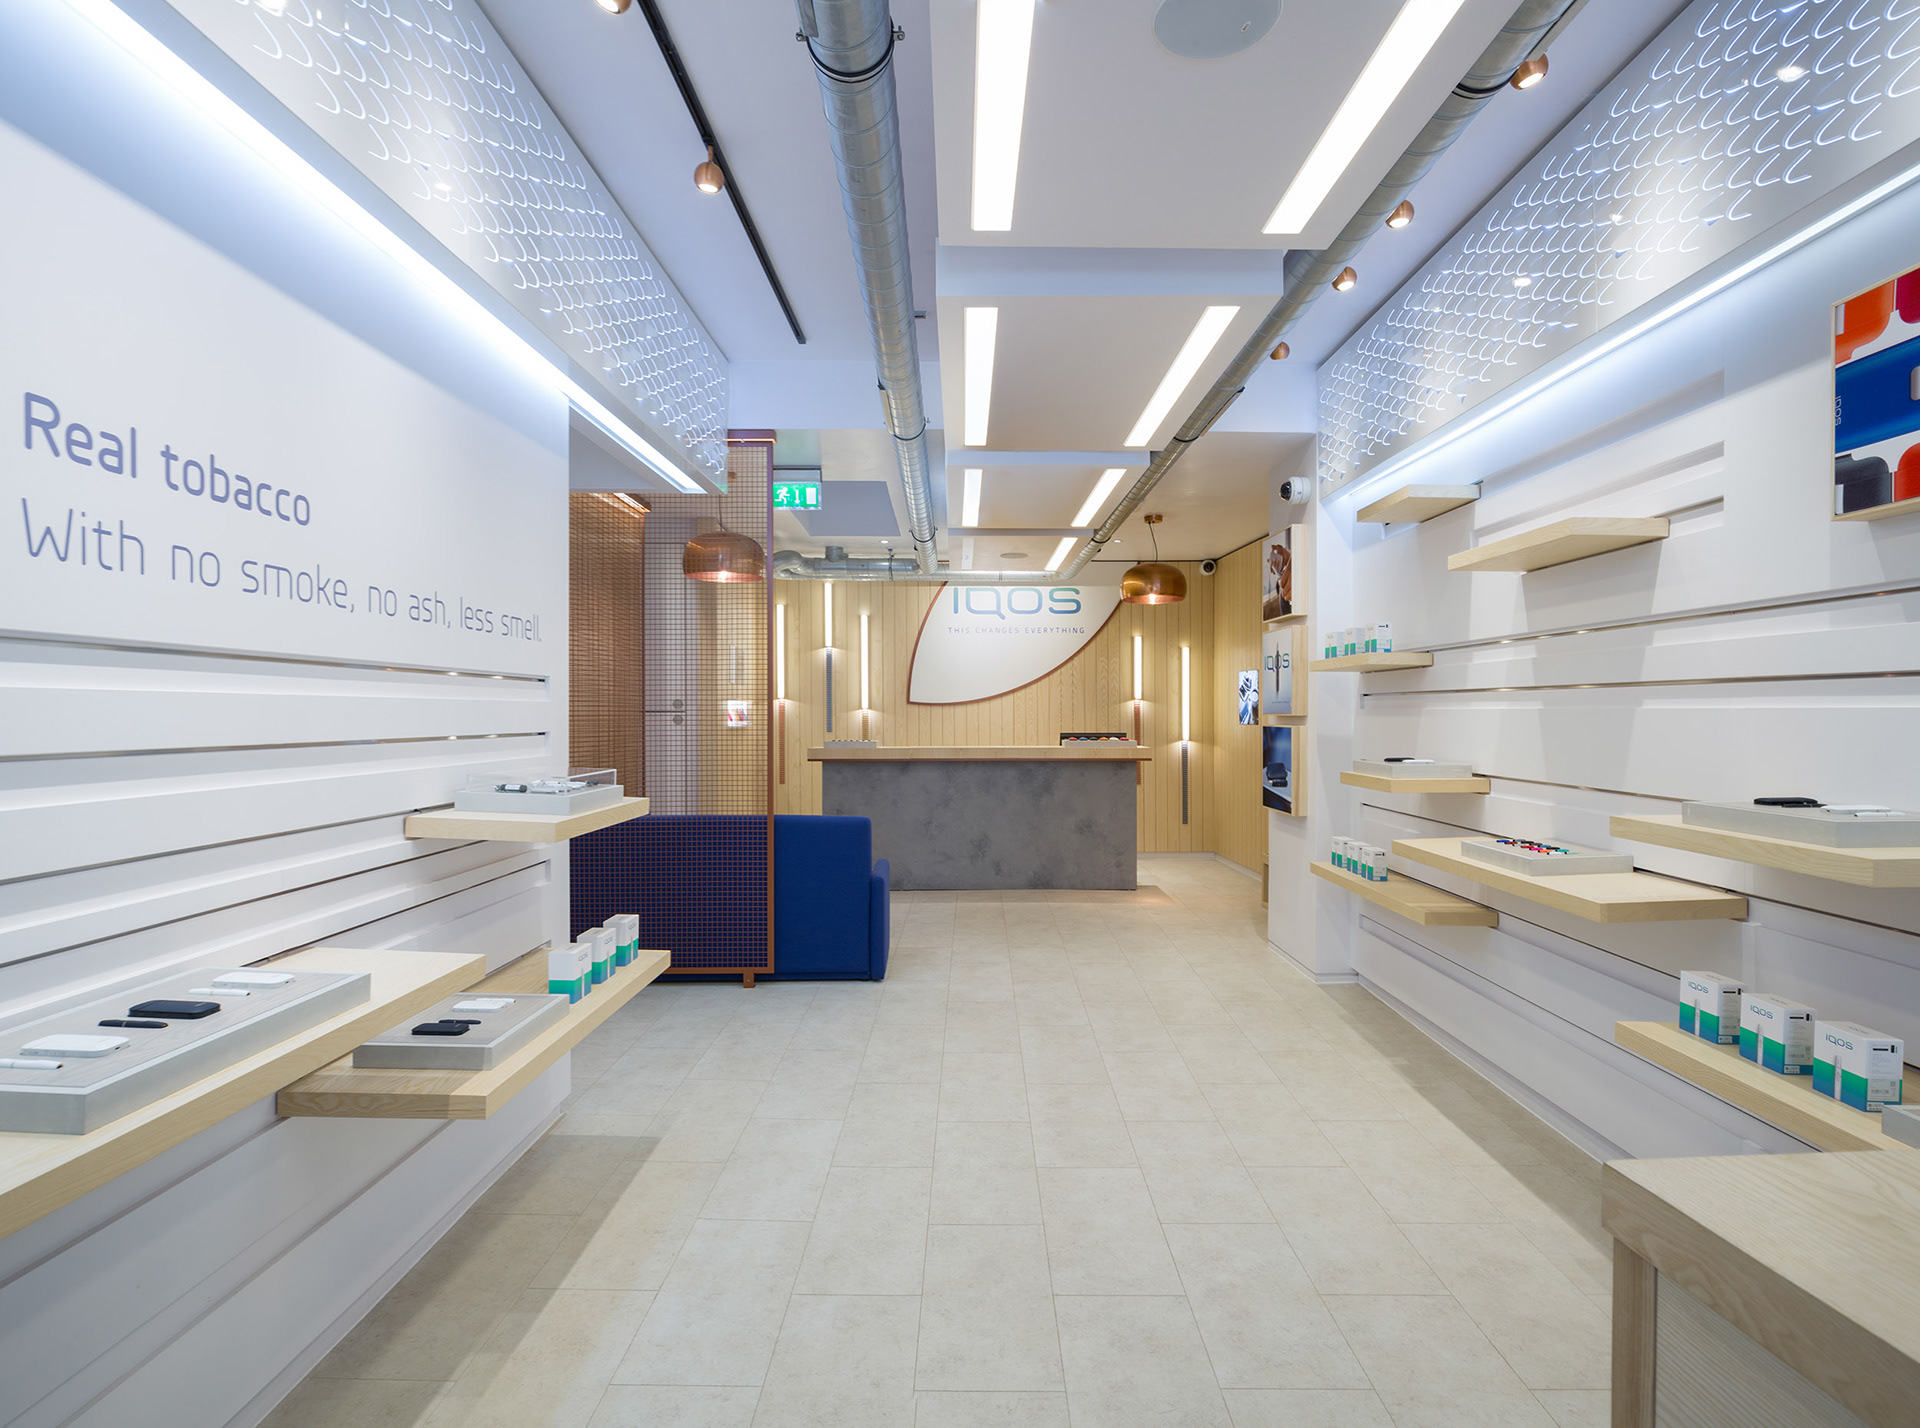 Architectural Interiors at IQOS Store in Soho wide image